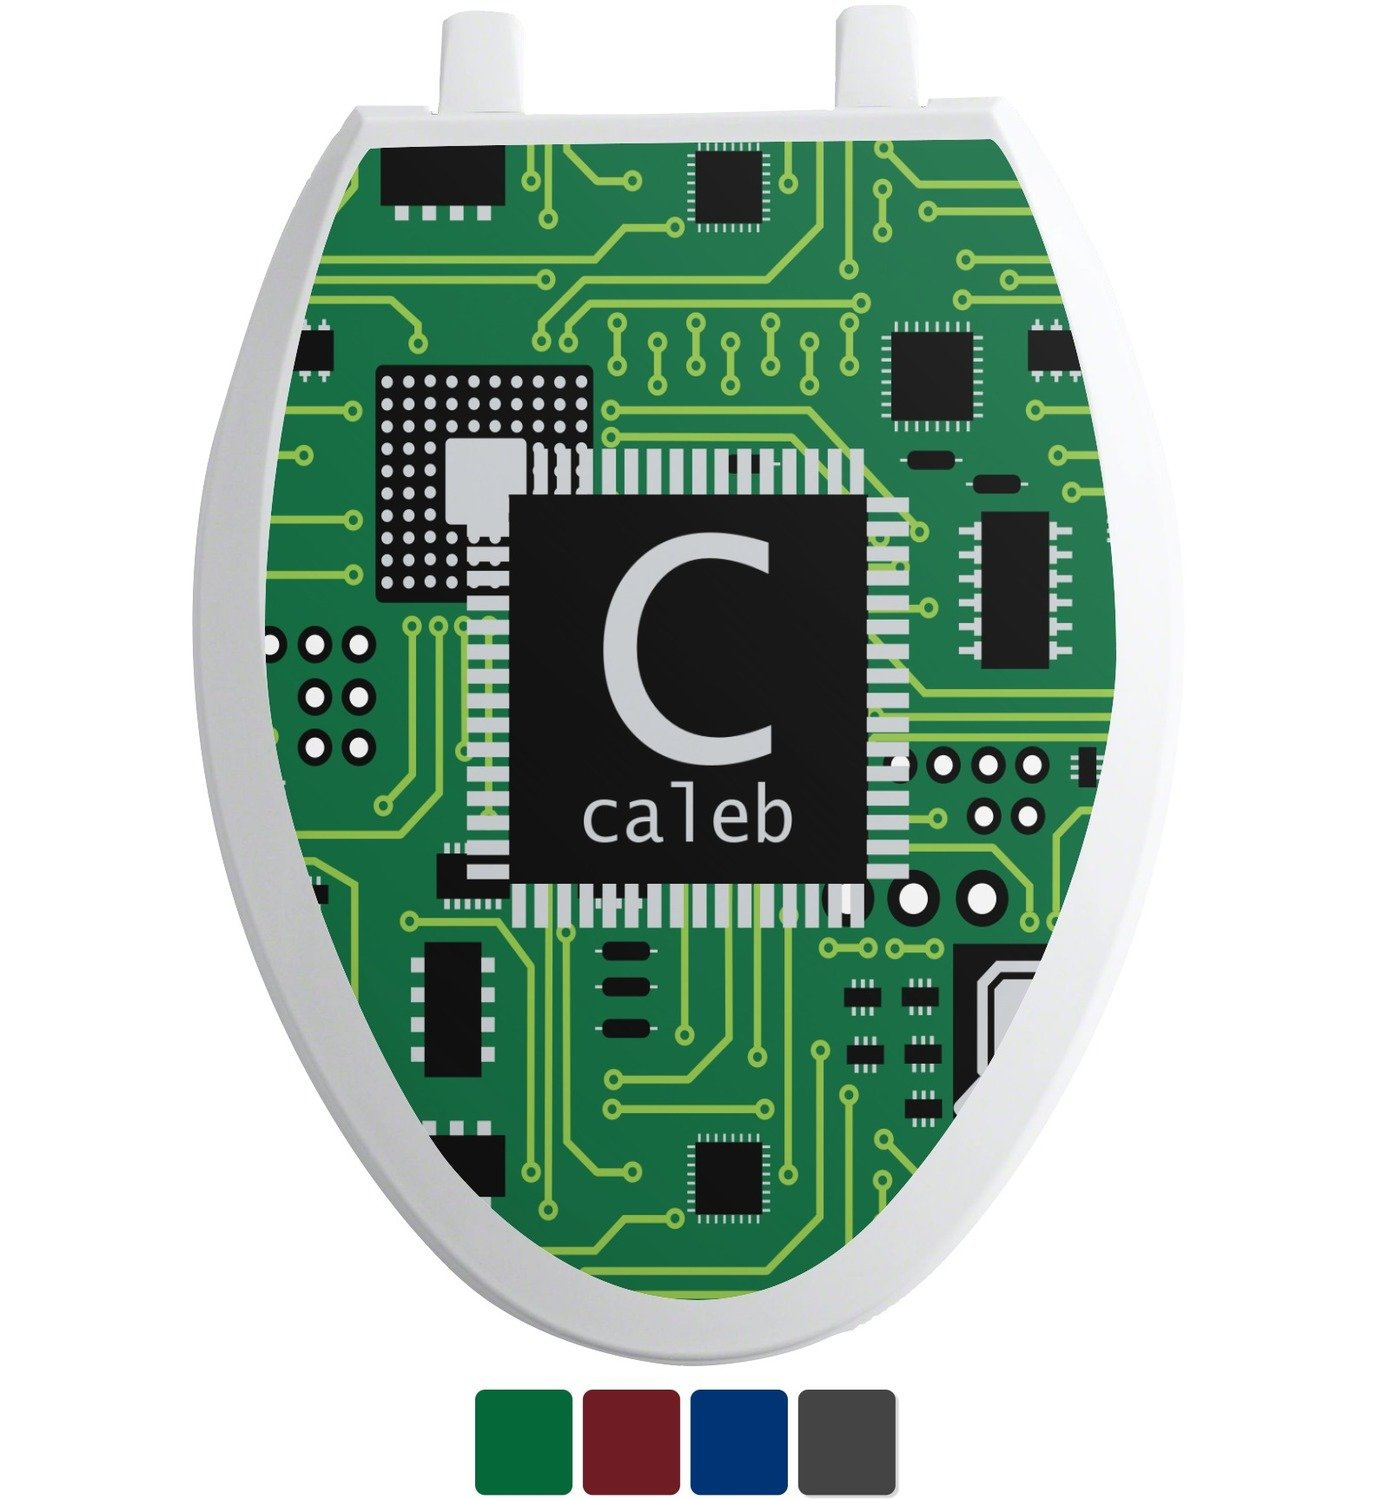 hot sale 2017 Circuit Board Toilet Seat Decal - Elongated (Personalized)